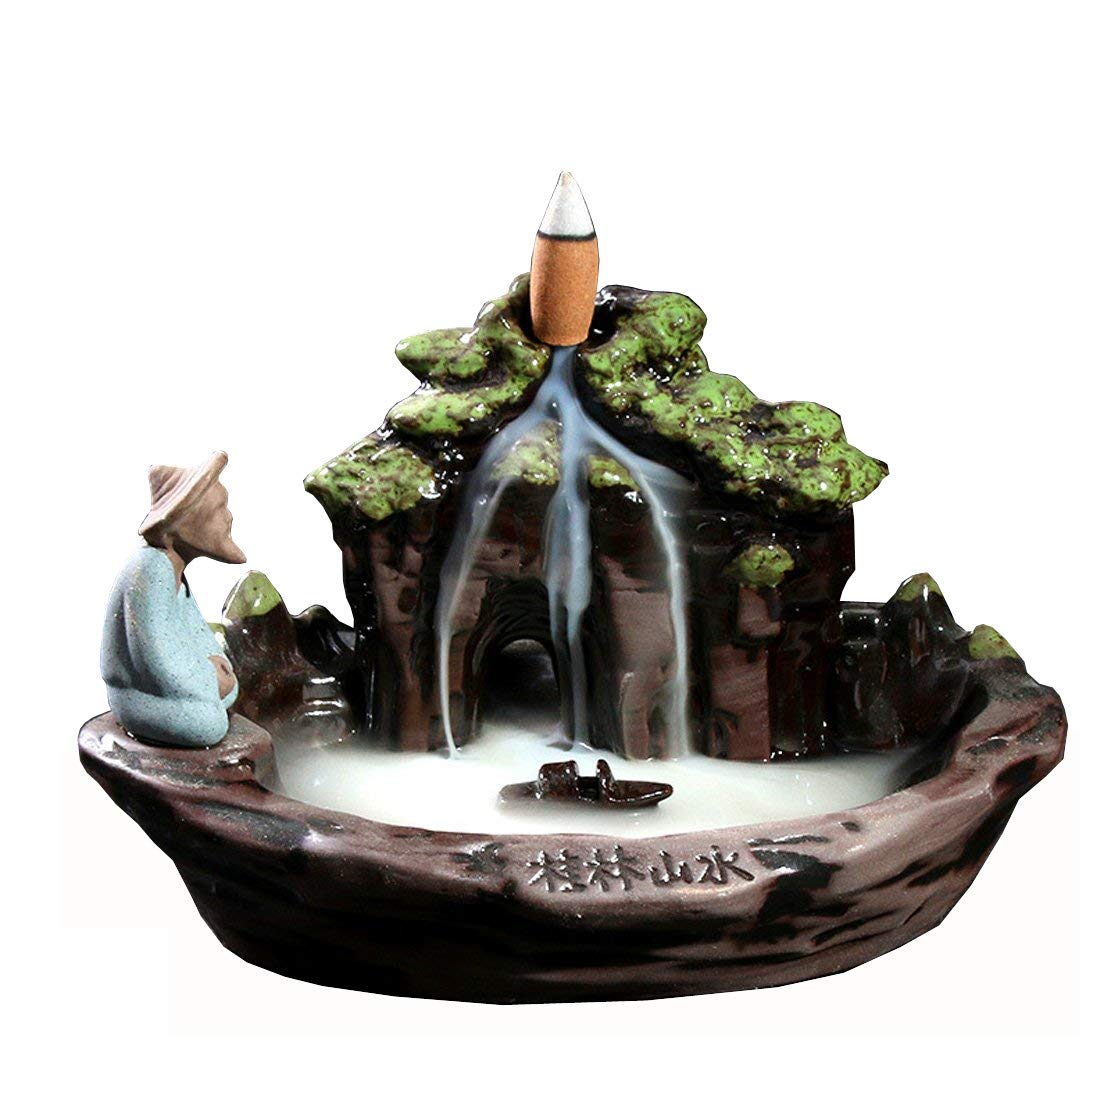 MeiHao Ceramic Backflow Incense Holder Incense Incense Burner Cones Stick Holder for Home Office Decor by MeiHao